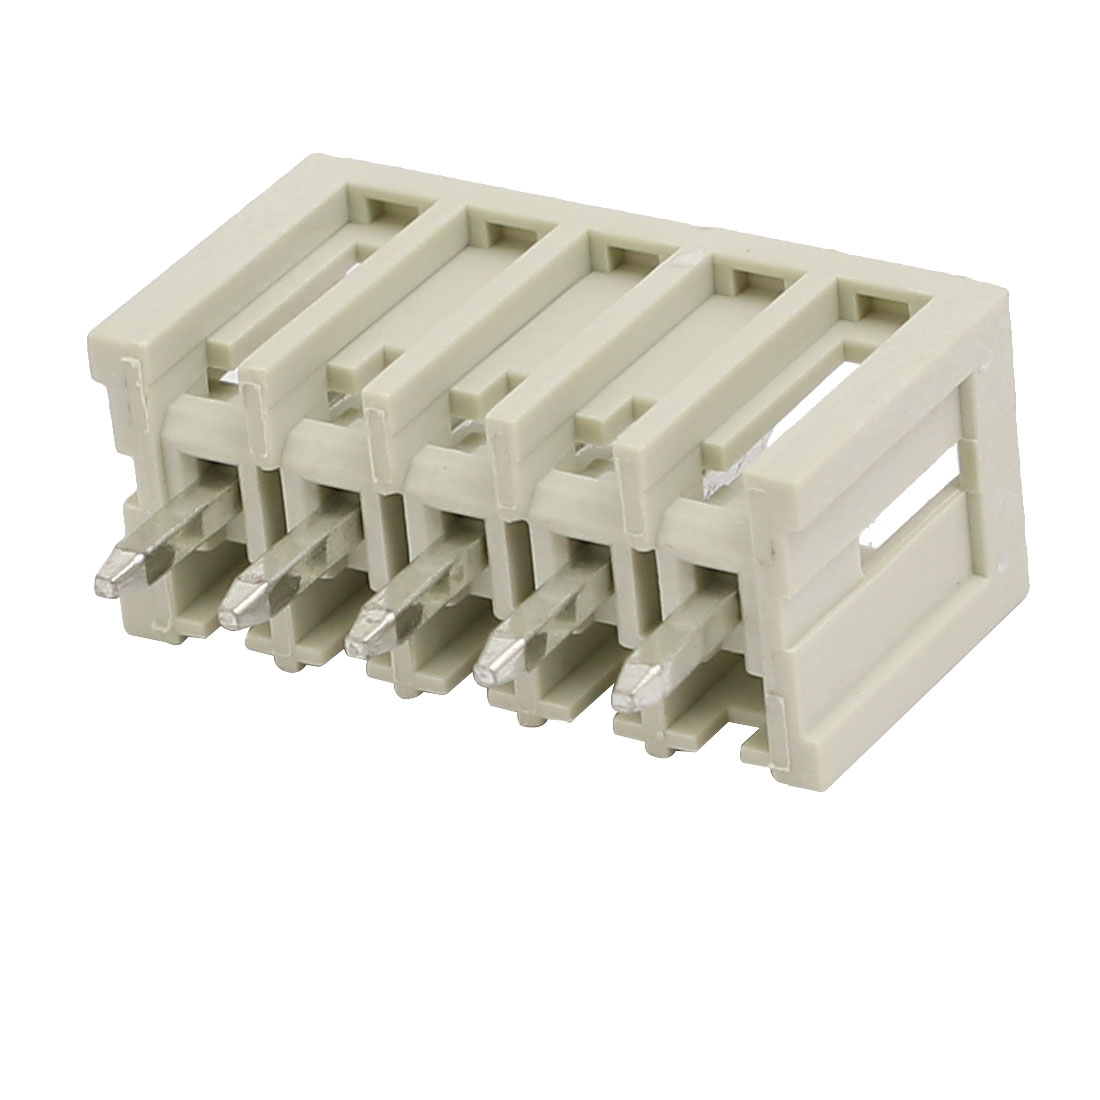 5 Pole PCB 3.5mm Pitch Straight Pin Box Header MCS Connector